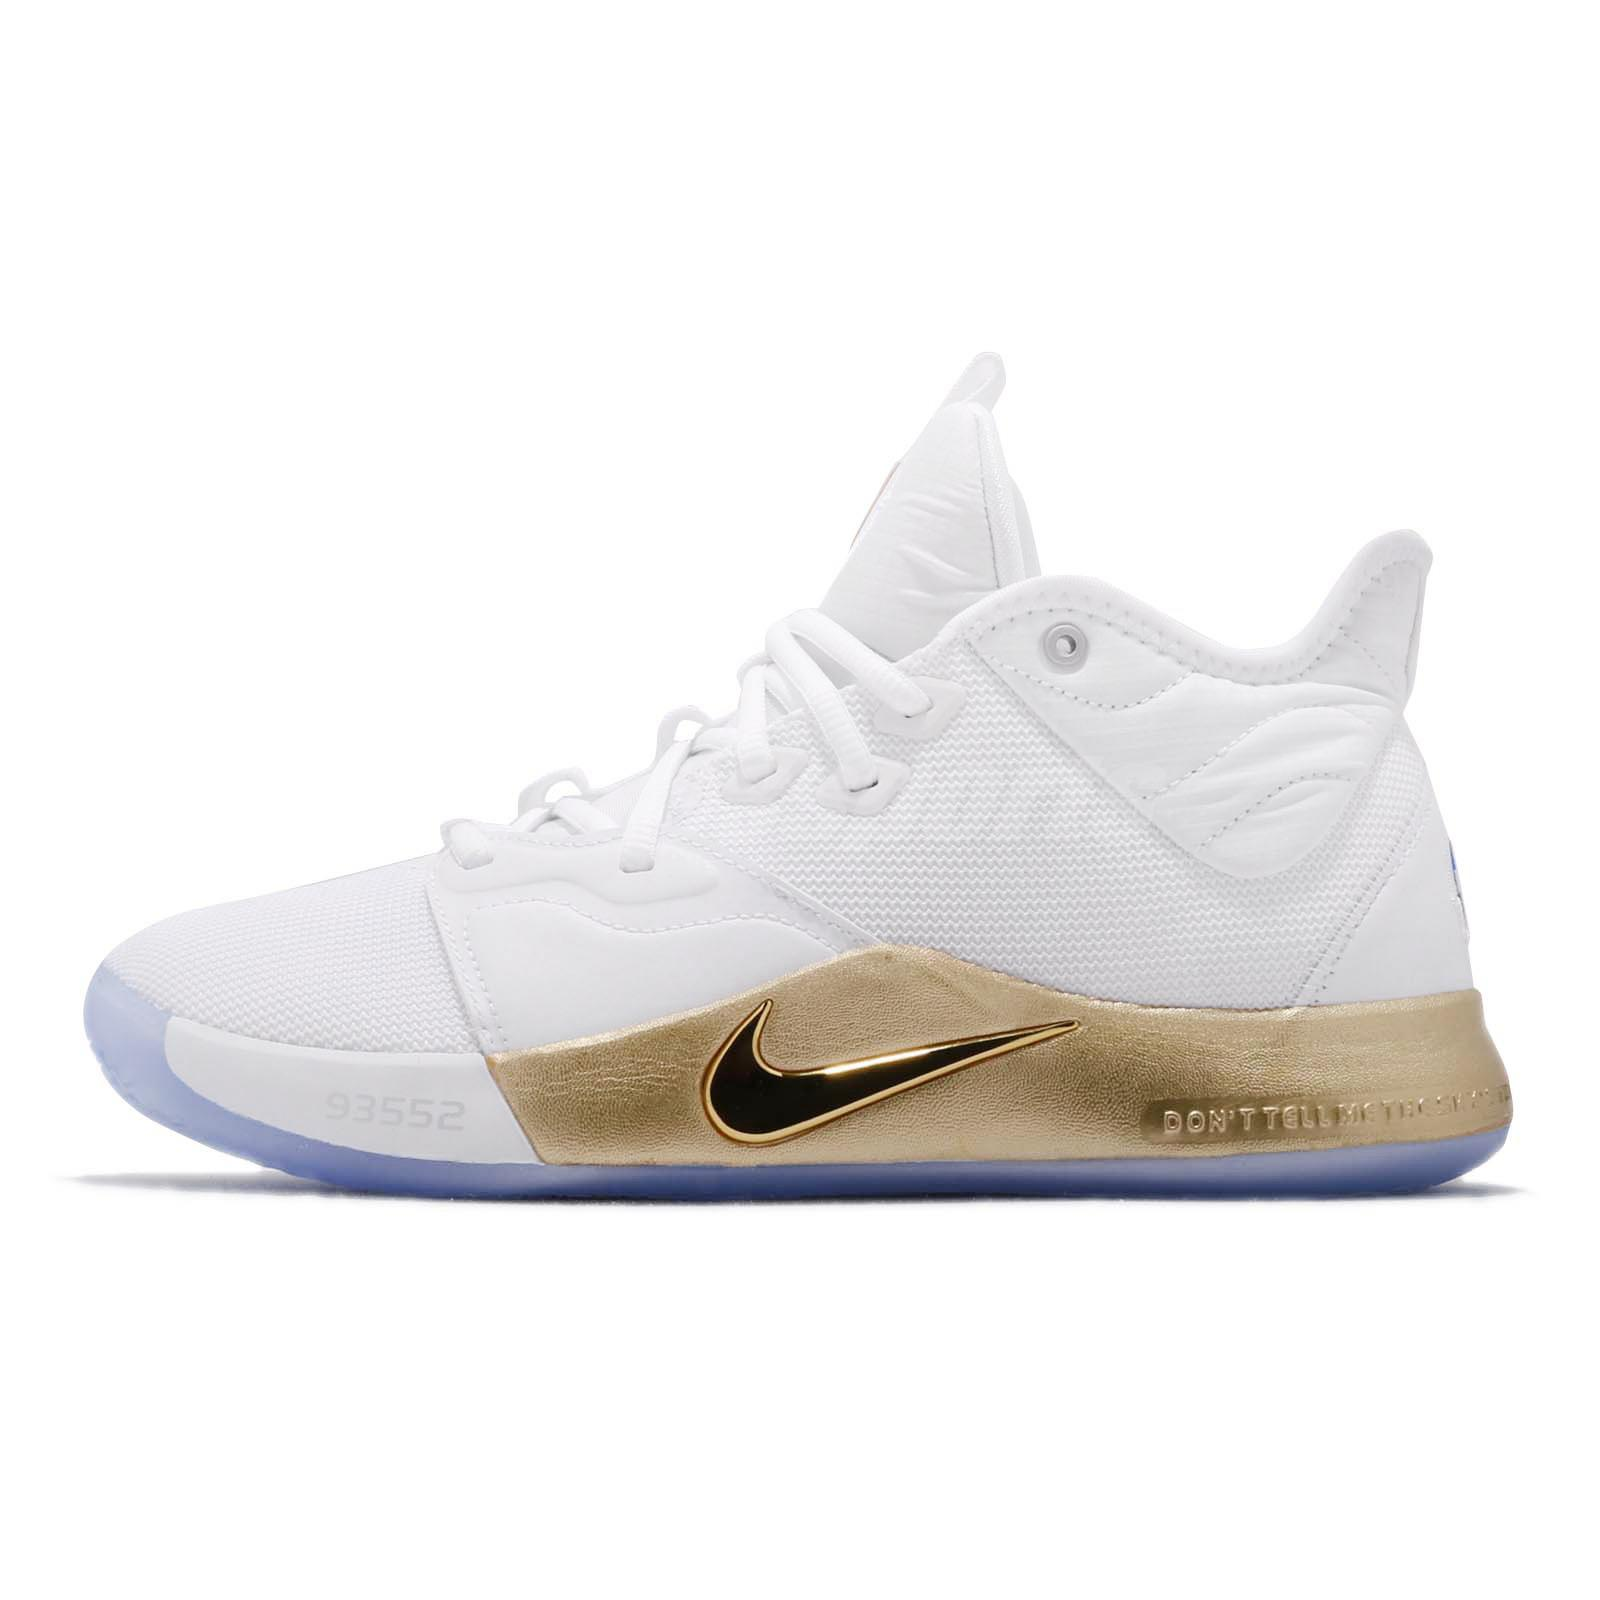 a43147654c1 Nike PG 3 NASA EP Apollo Missions White Gold Paul George Mens Shoes  CI2667-100